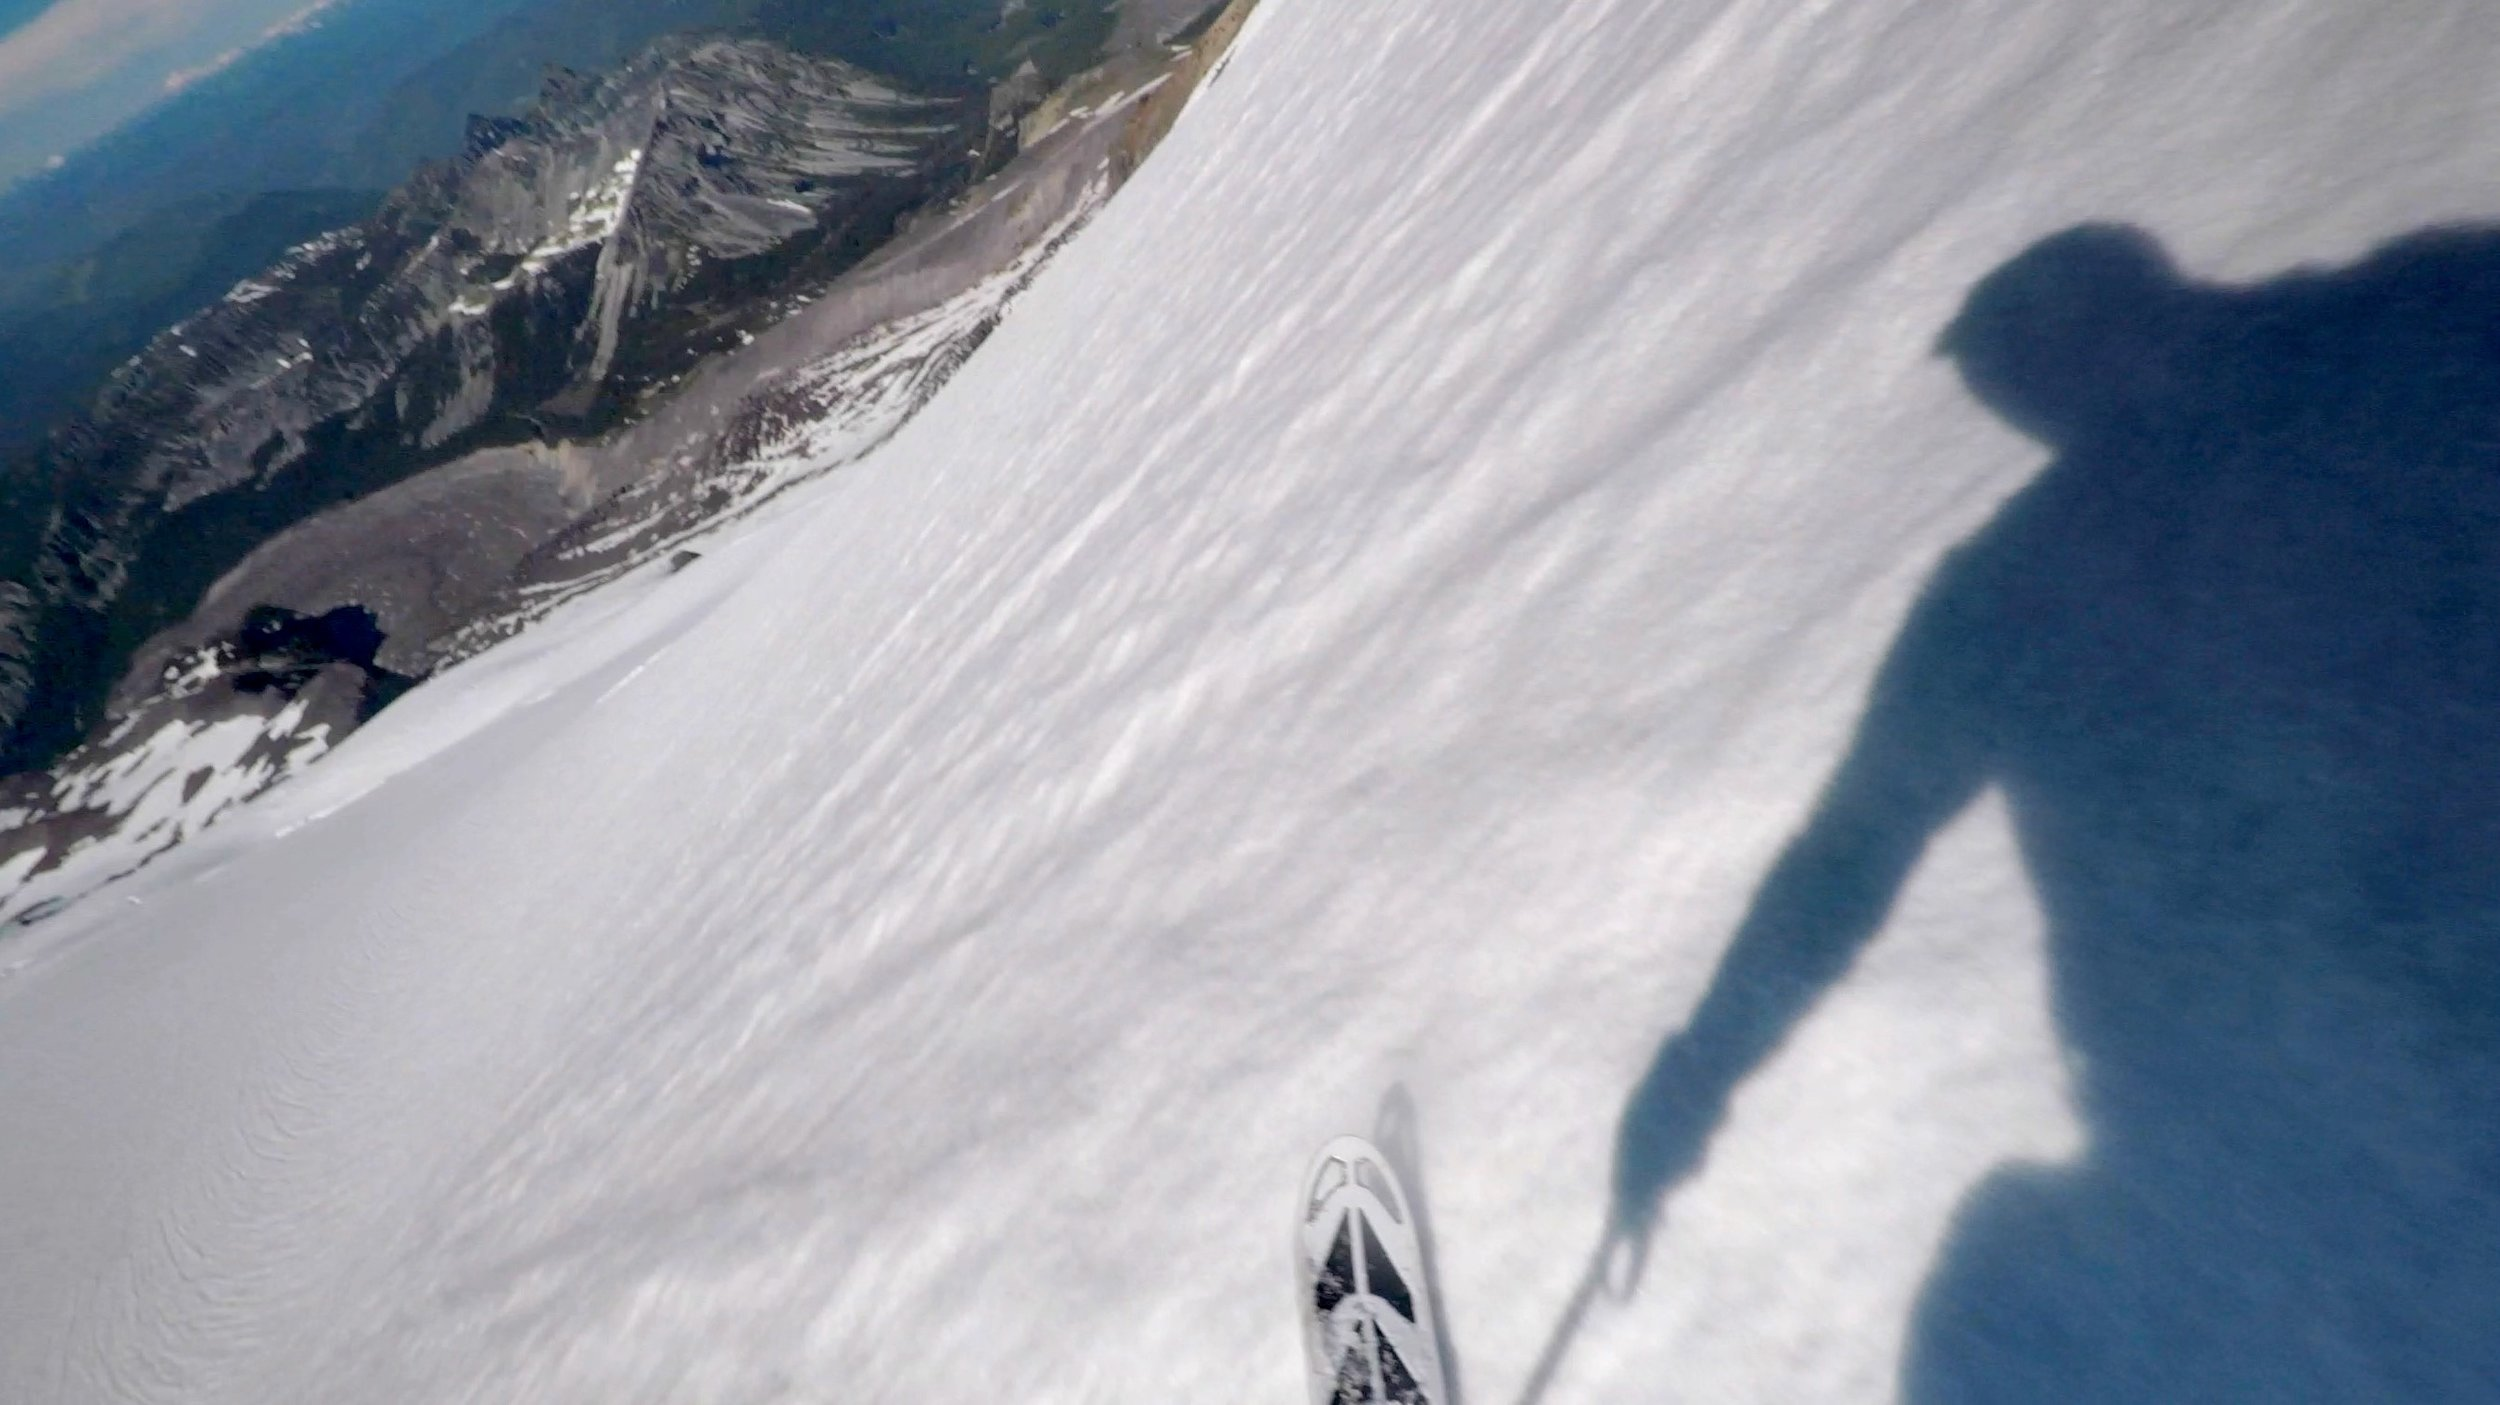 skiing the Russell Glacier, Carbon Glacier below (upper left)